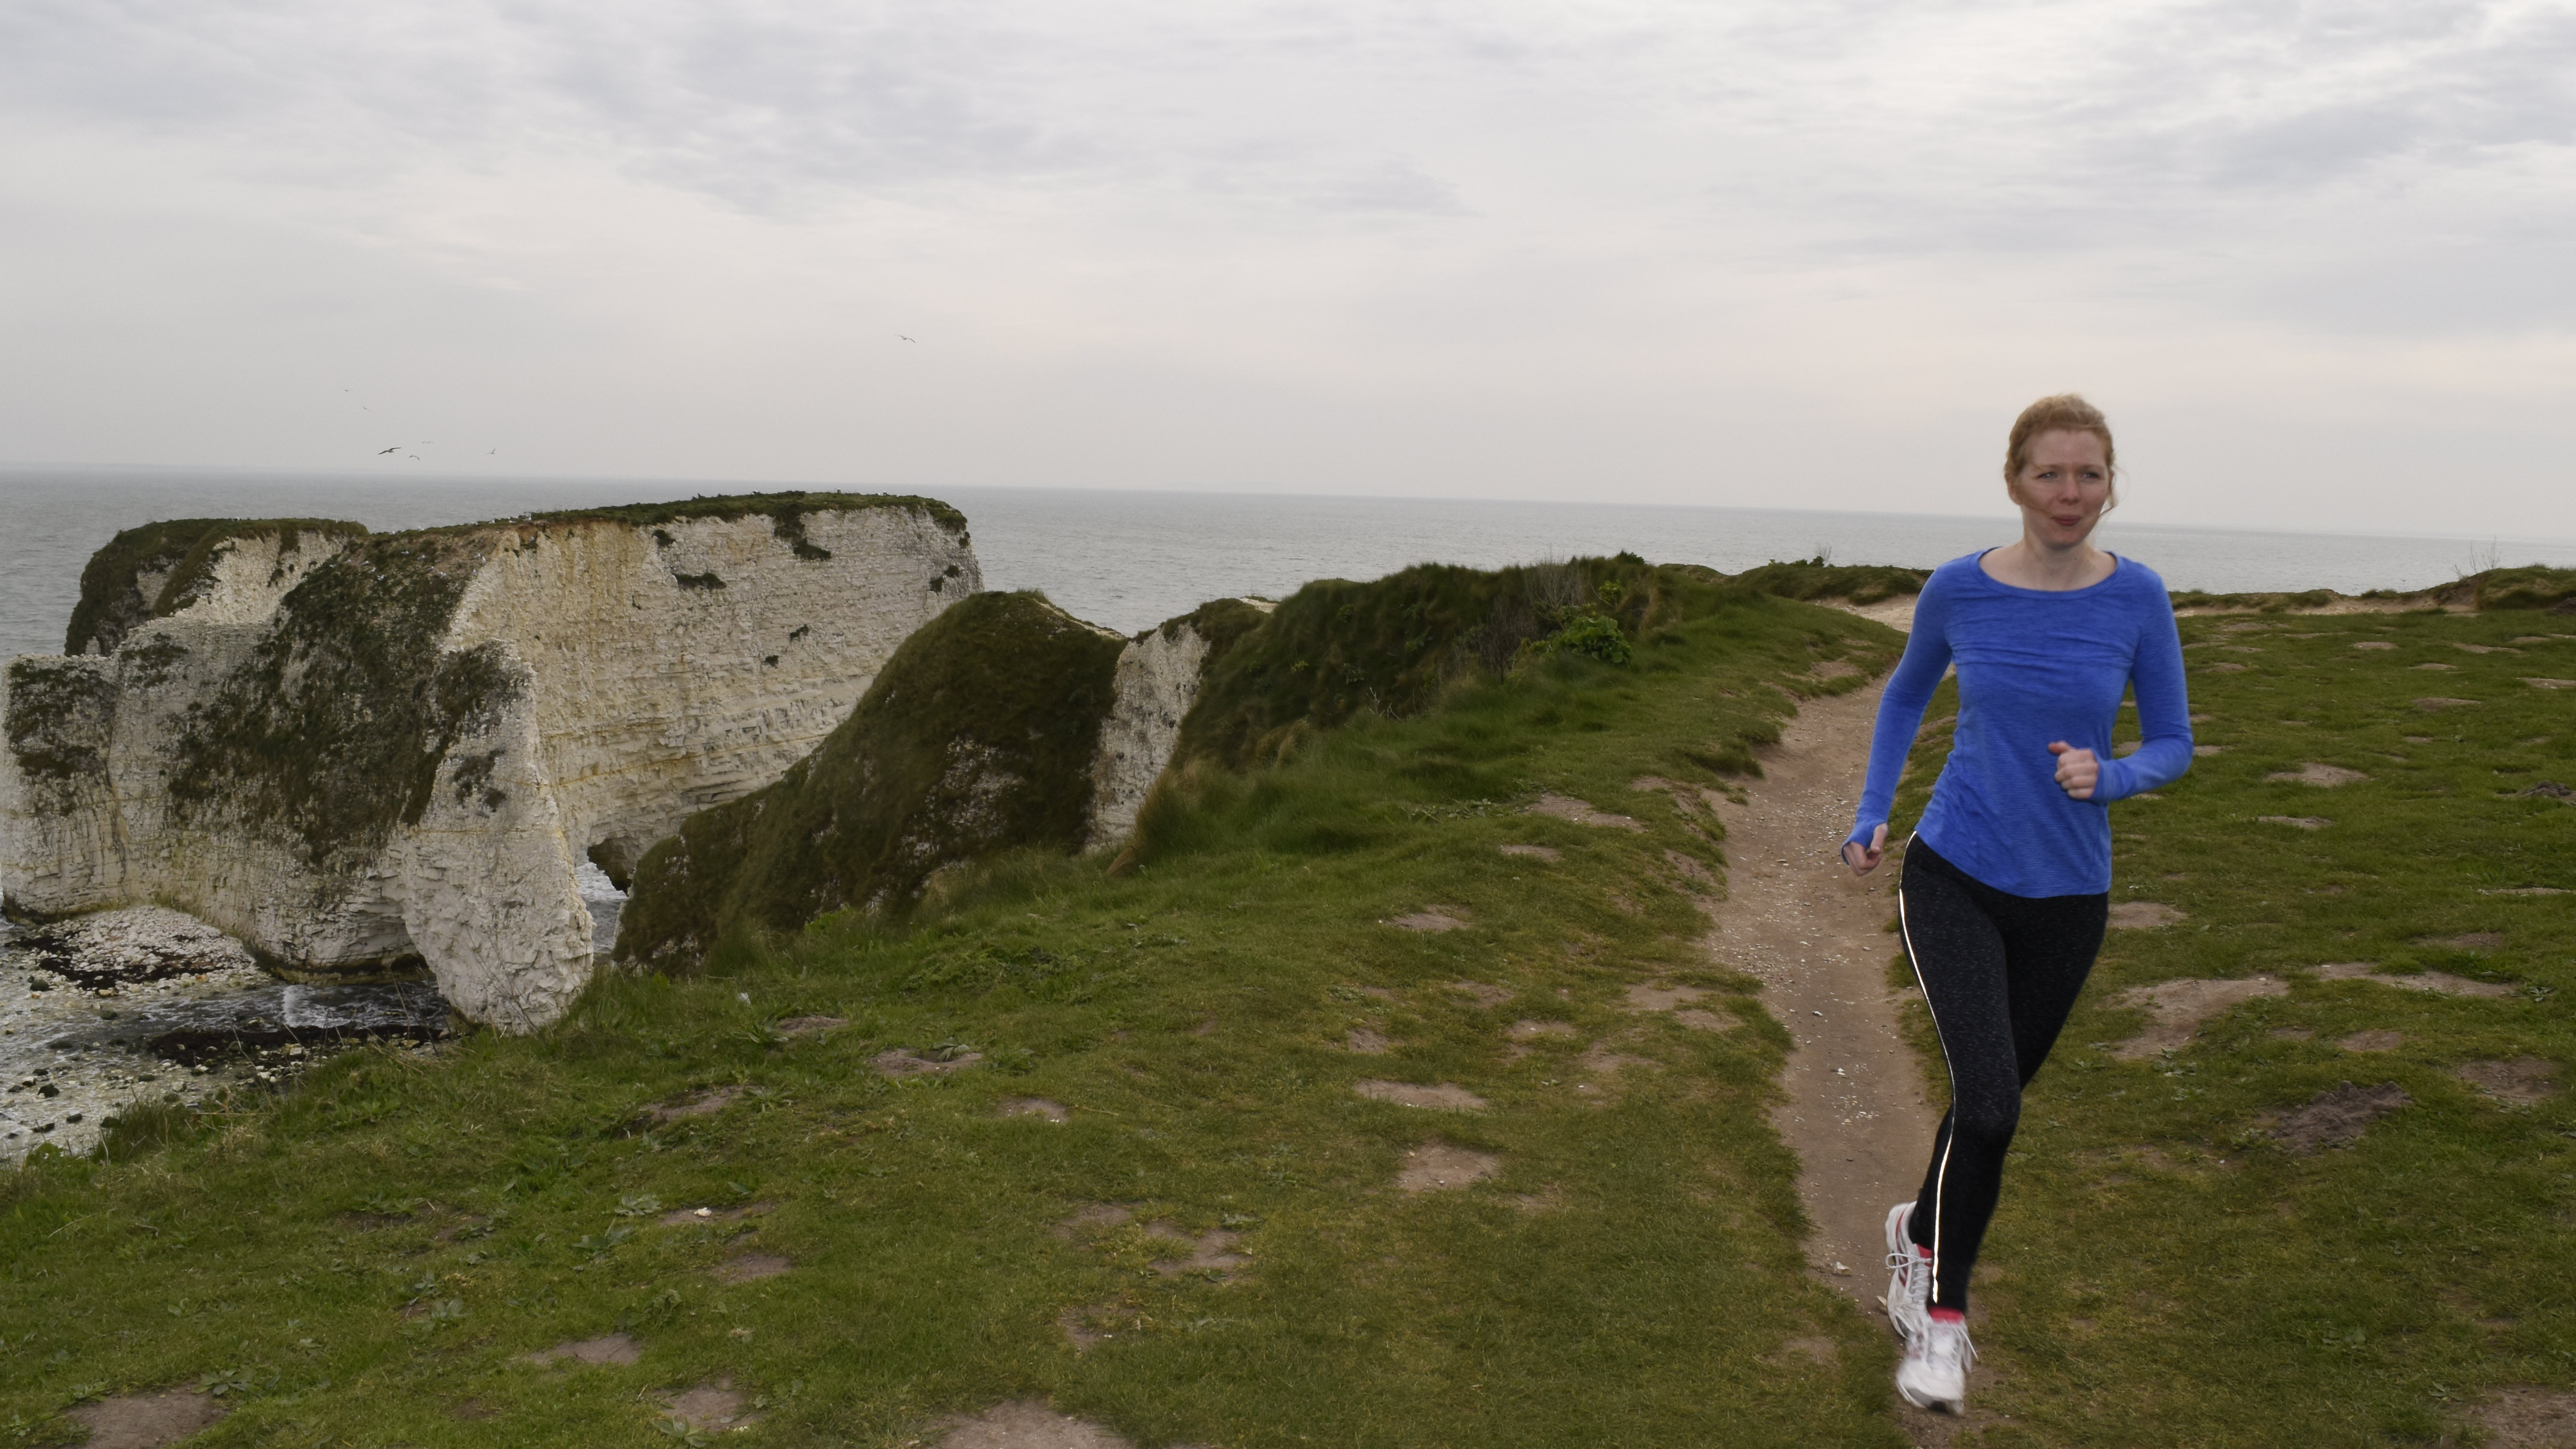 A runner passing Old Harry Rocks at Studland Bay